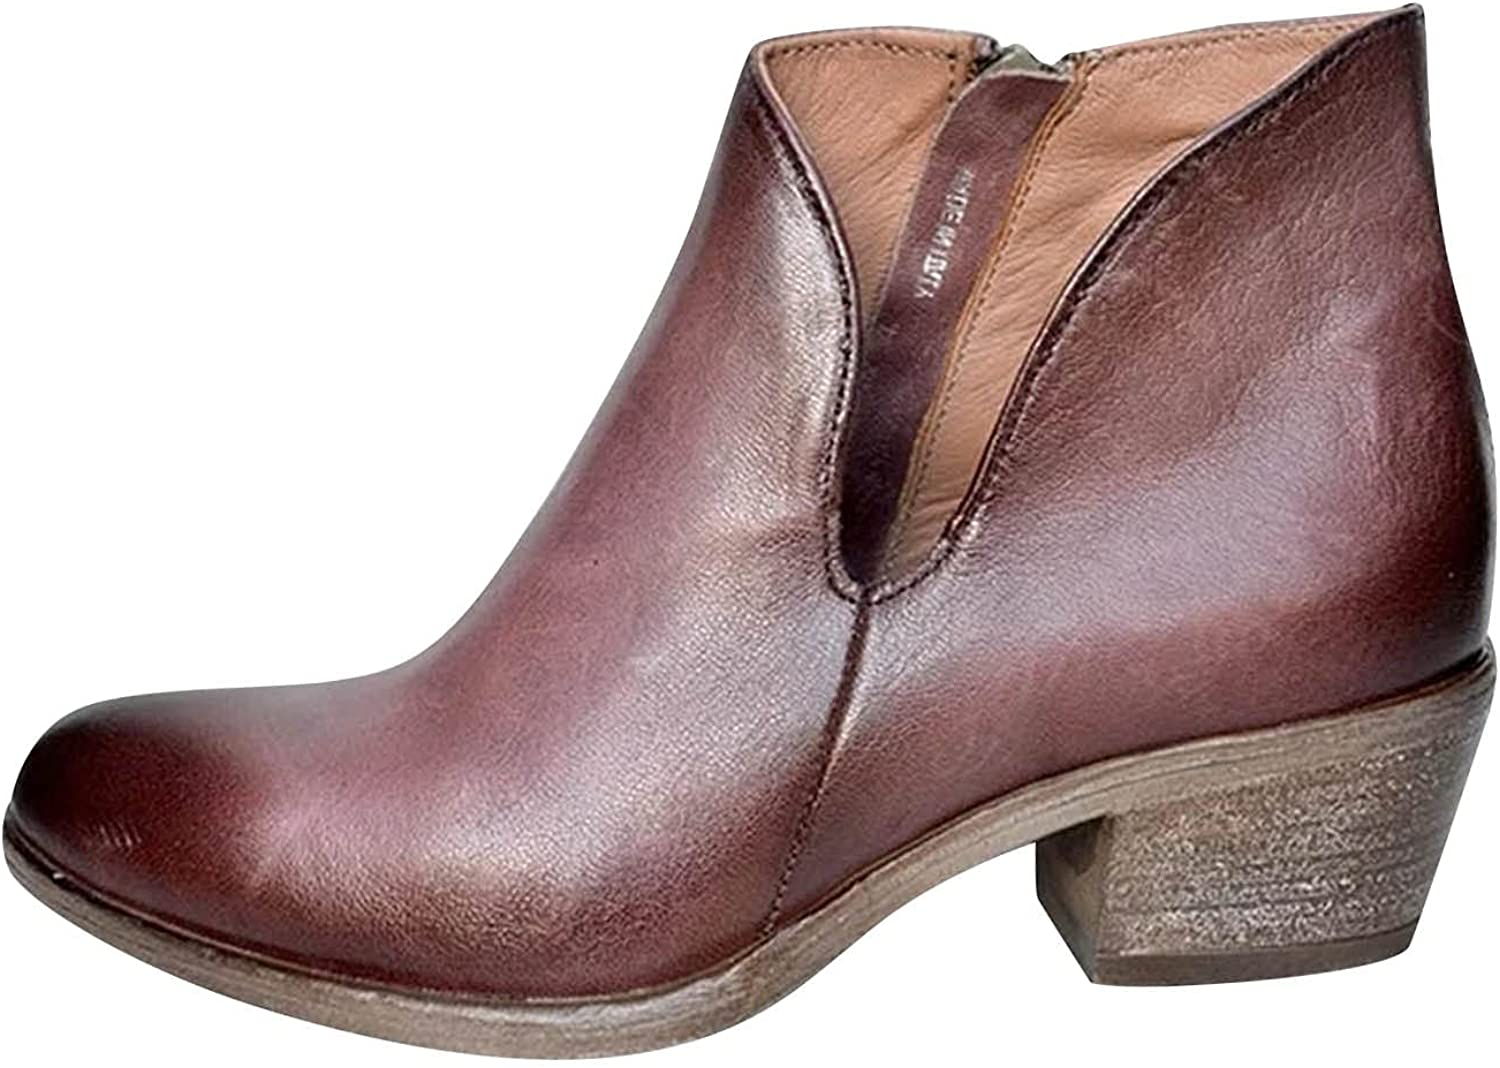 Women's Western Cowboy Boots with Pull-Up Tabs Mid-Calf Boots Lo